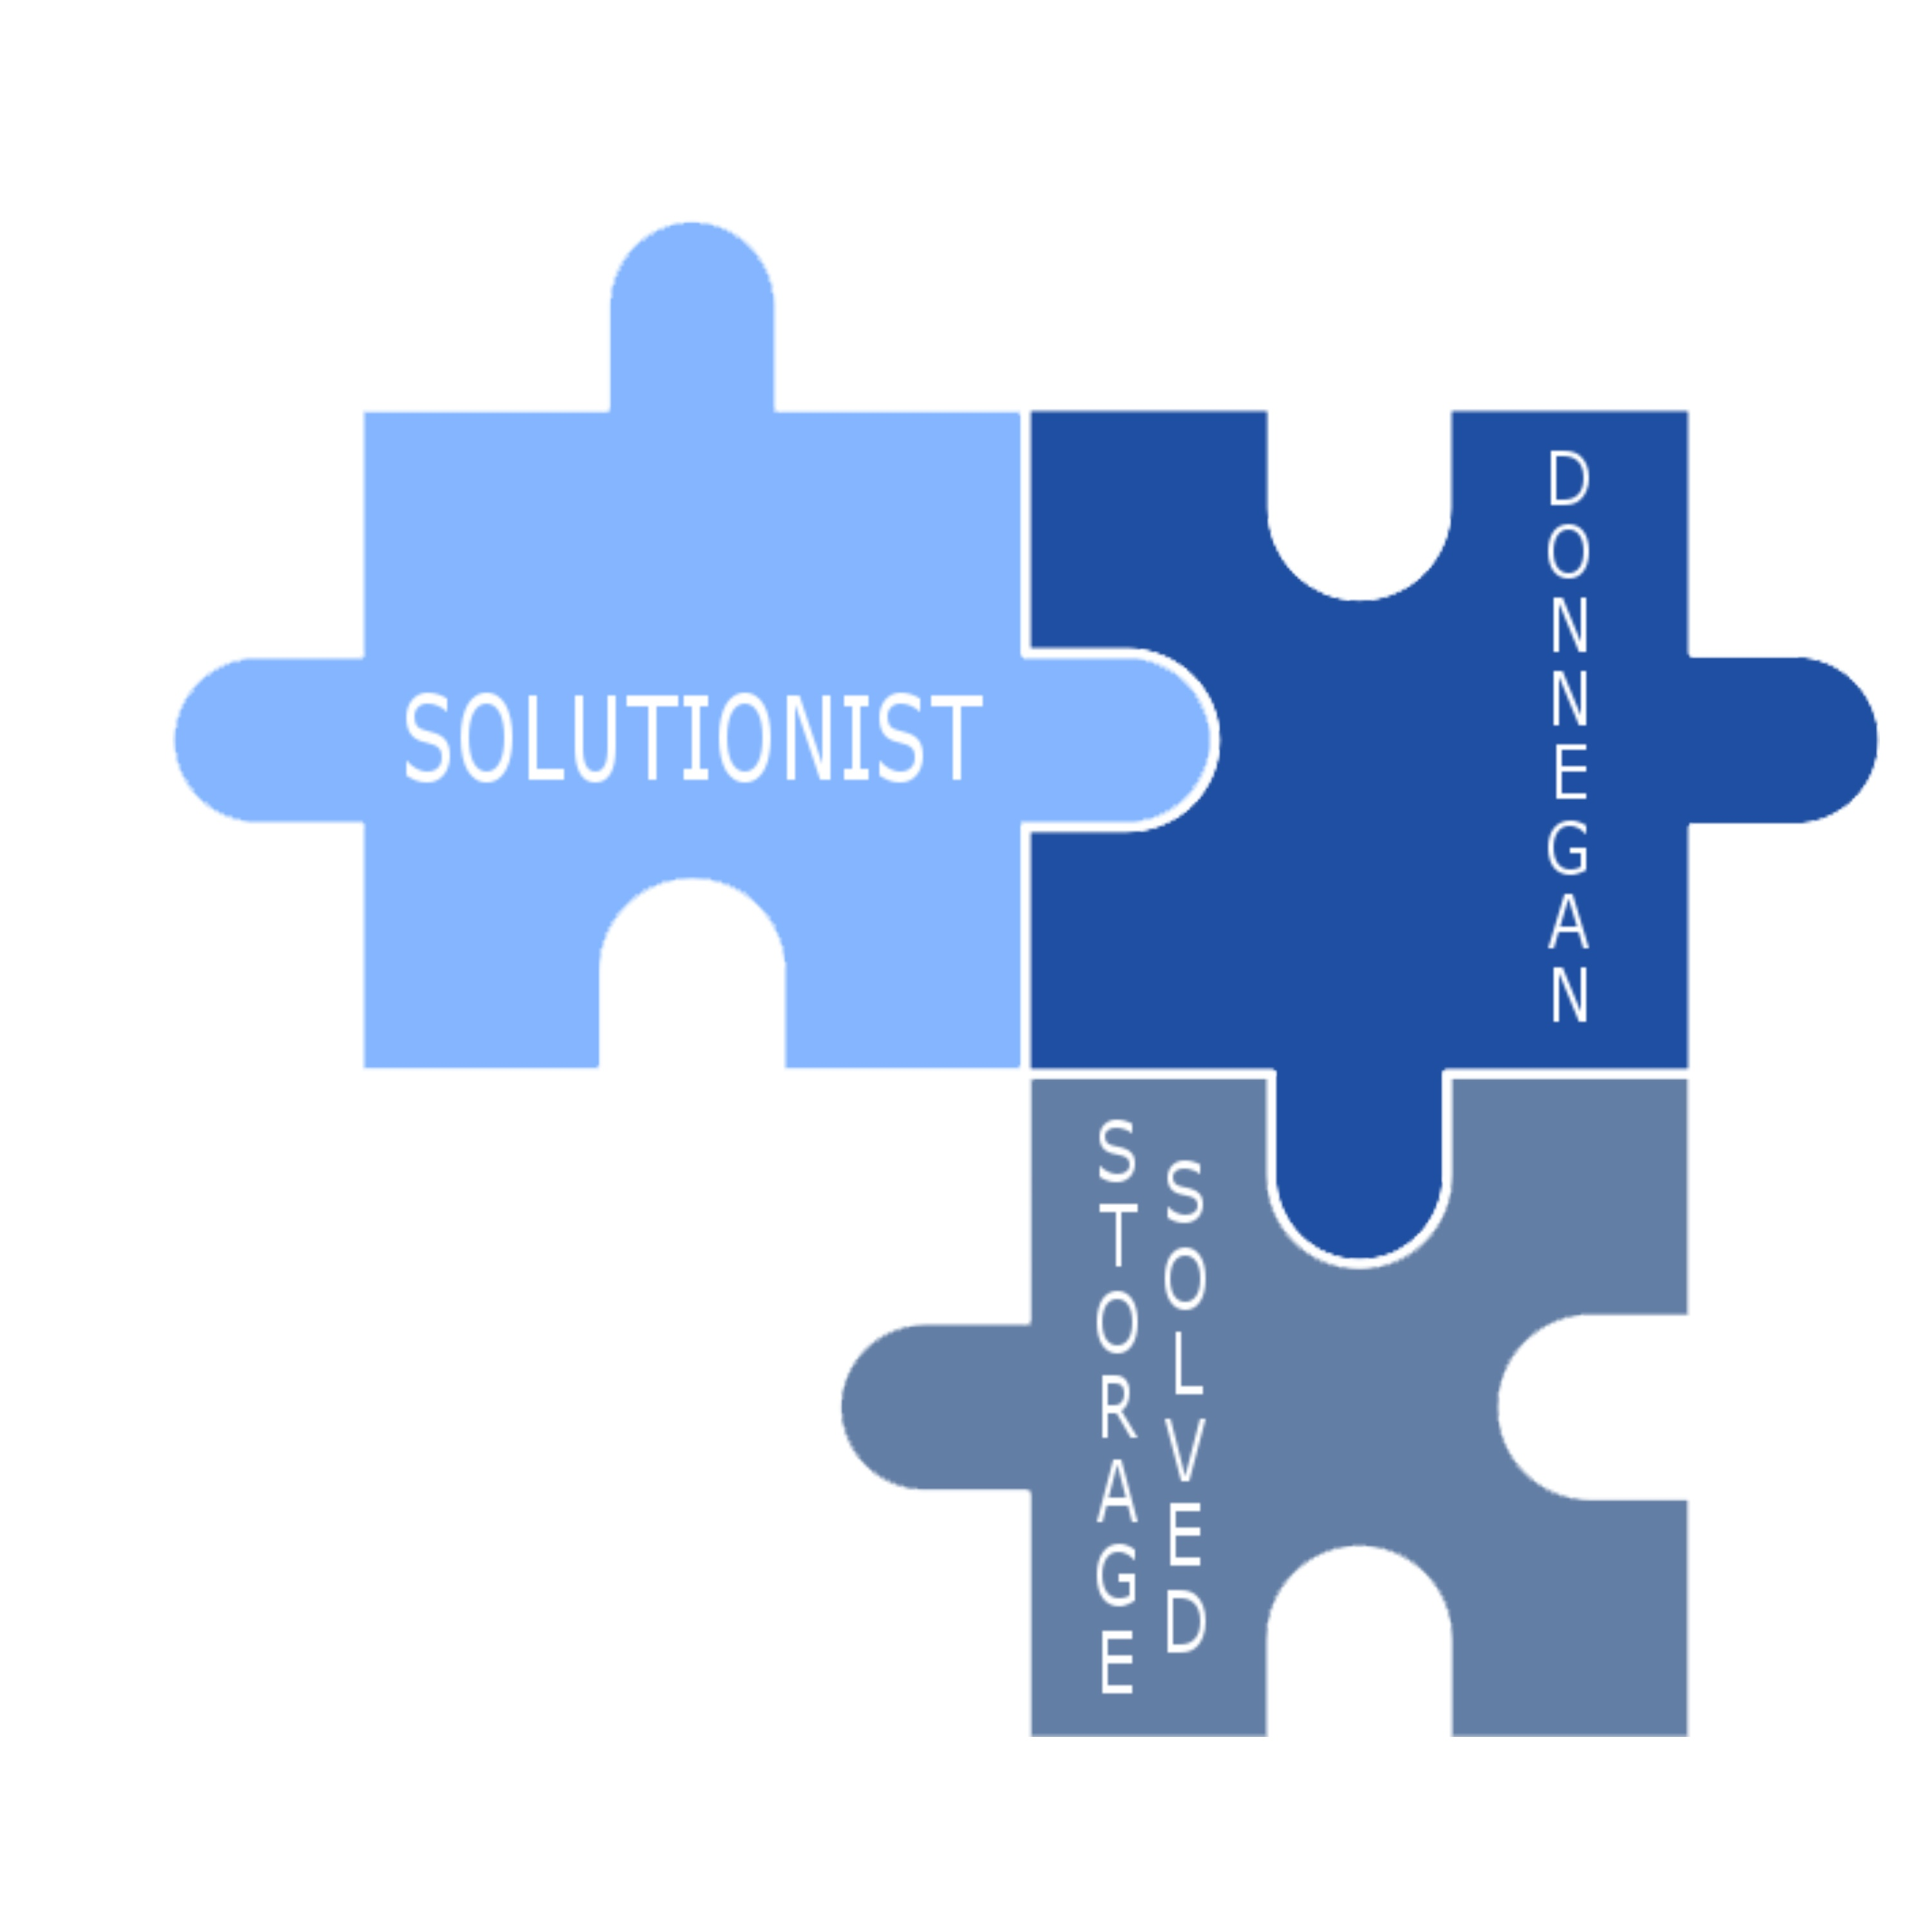 solutionist